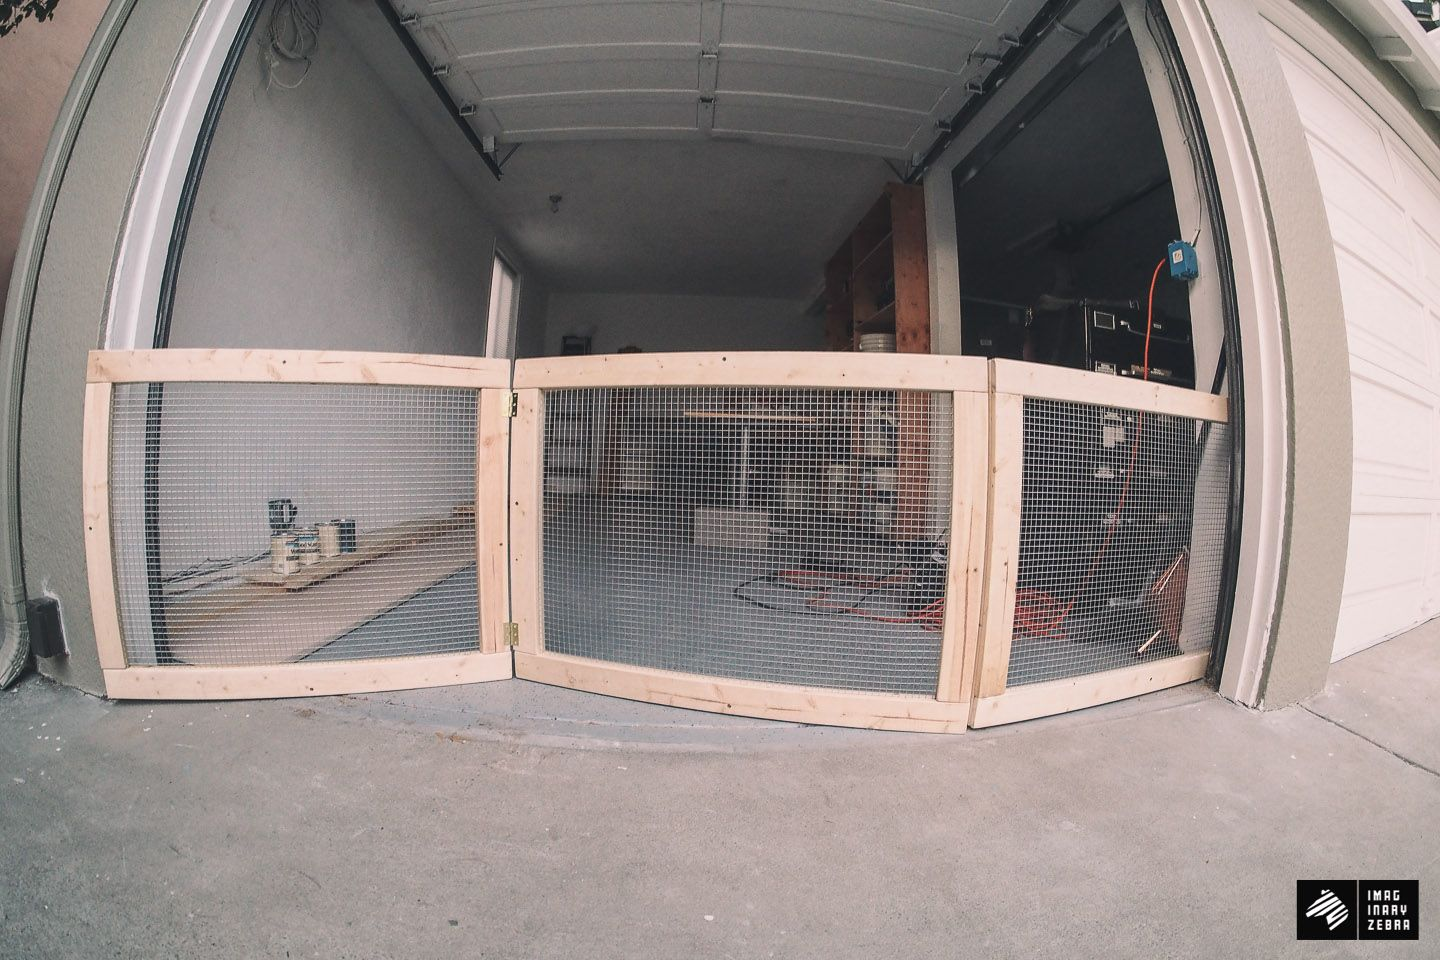 My Man Cave Part 1 Diy Dog Fence For Garage Doors Imaginary Zebra Diy Dog Fence Diy Dog Gate Dog Fence